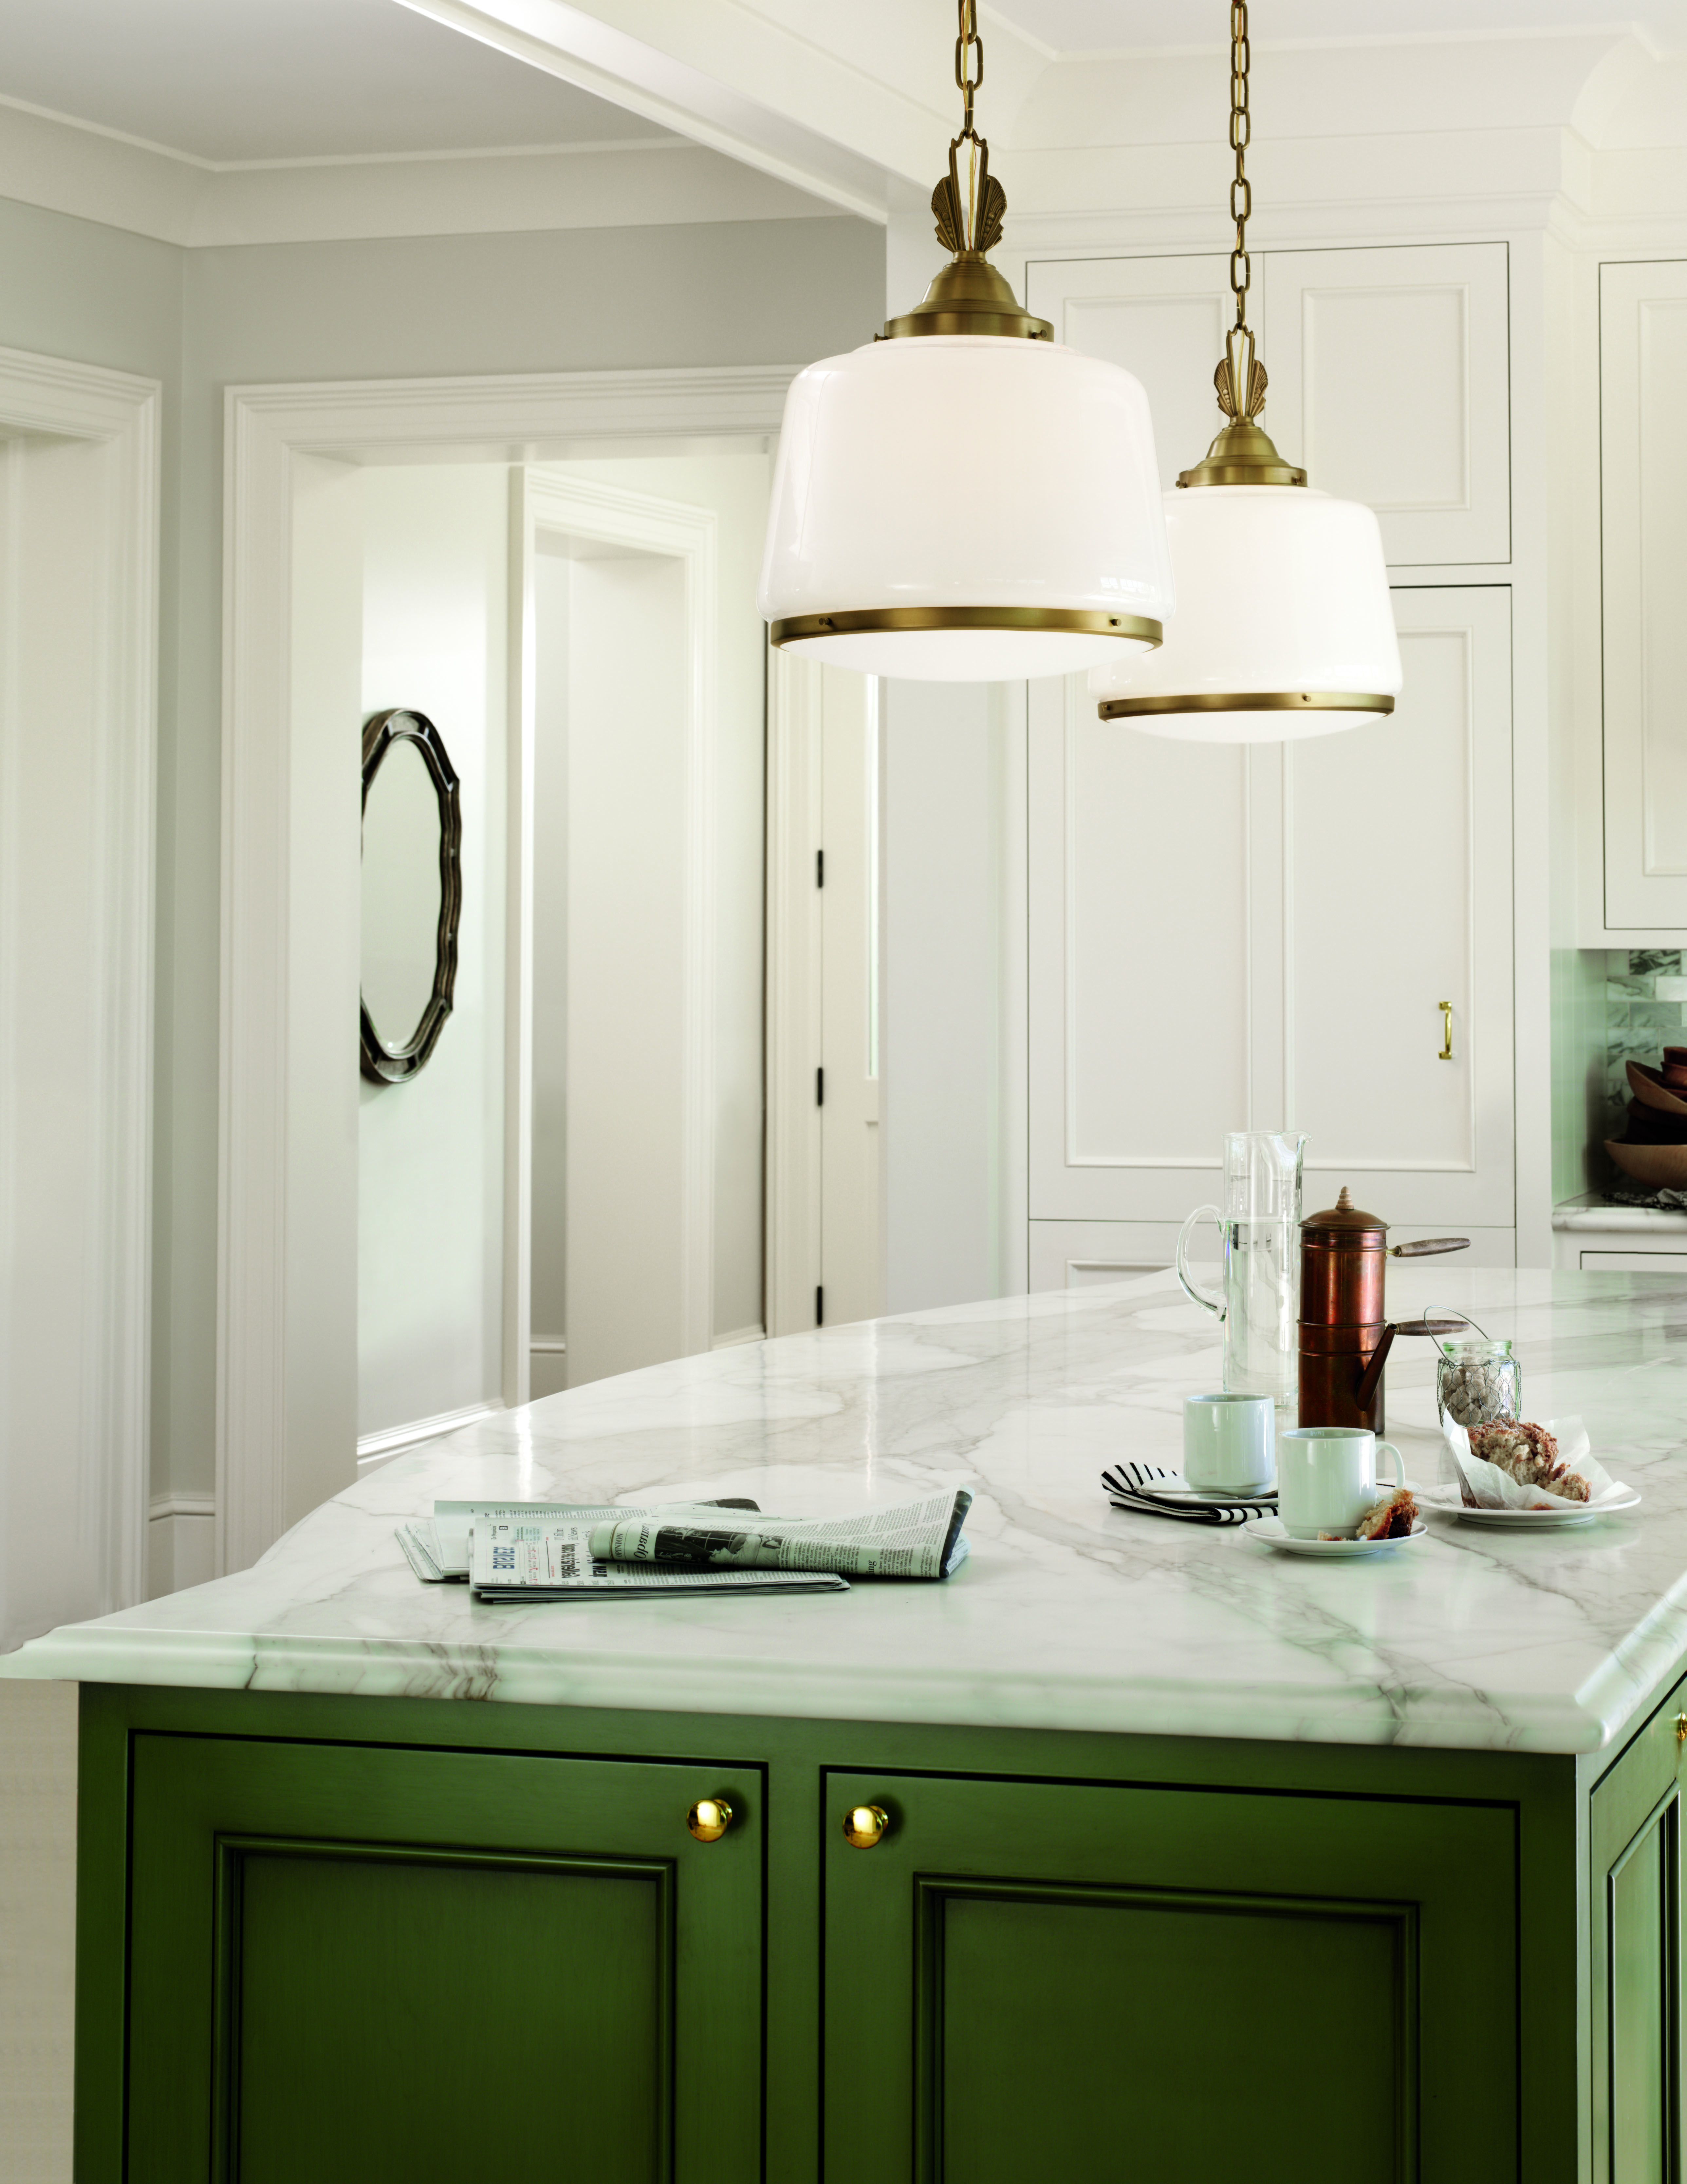 in love with the light fixtures and the kitchen a pair of our